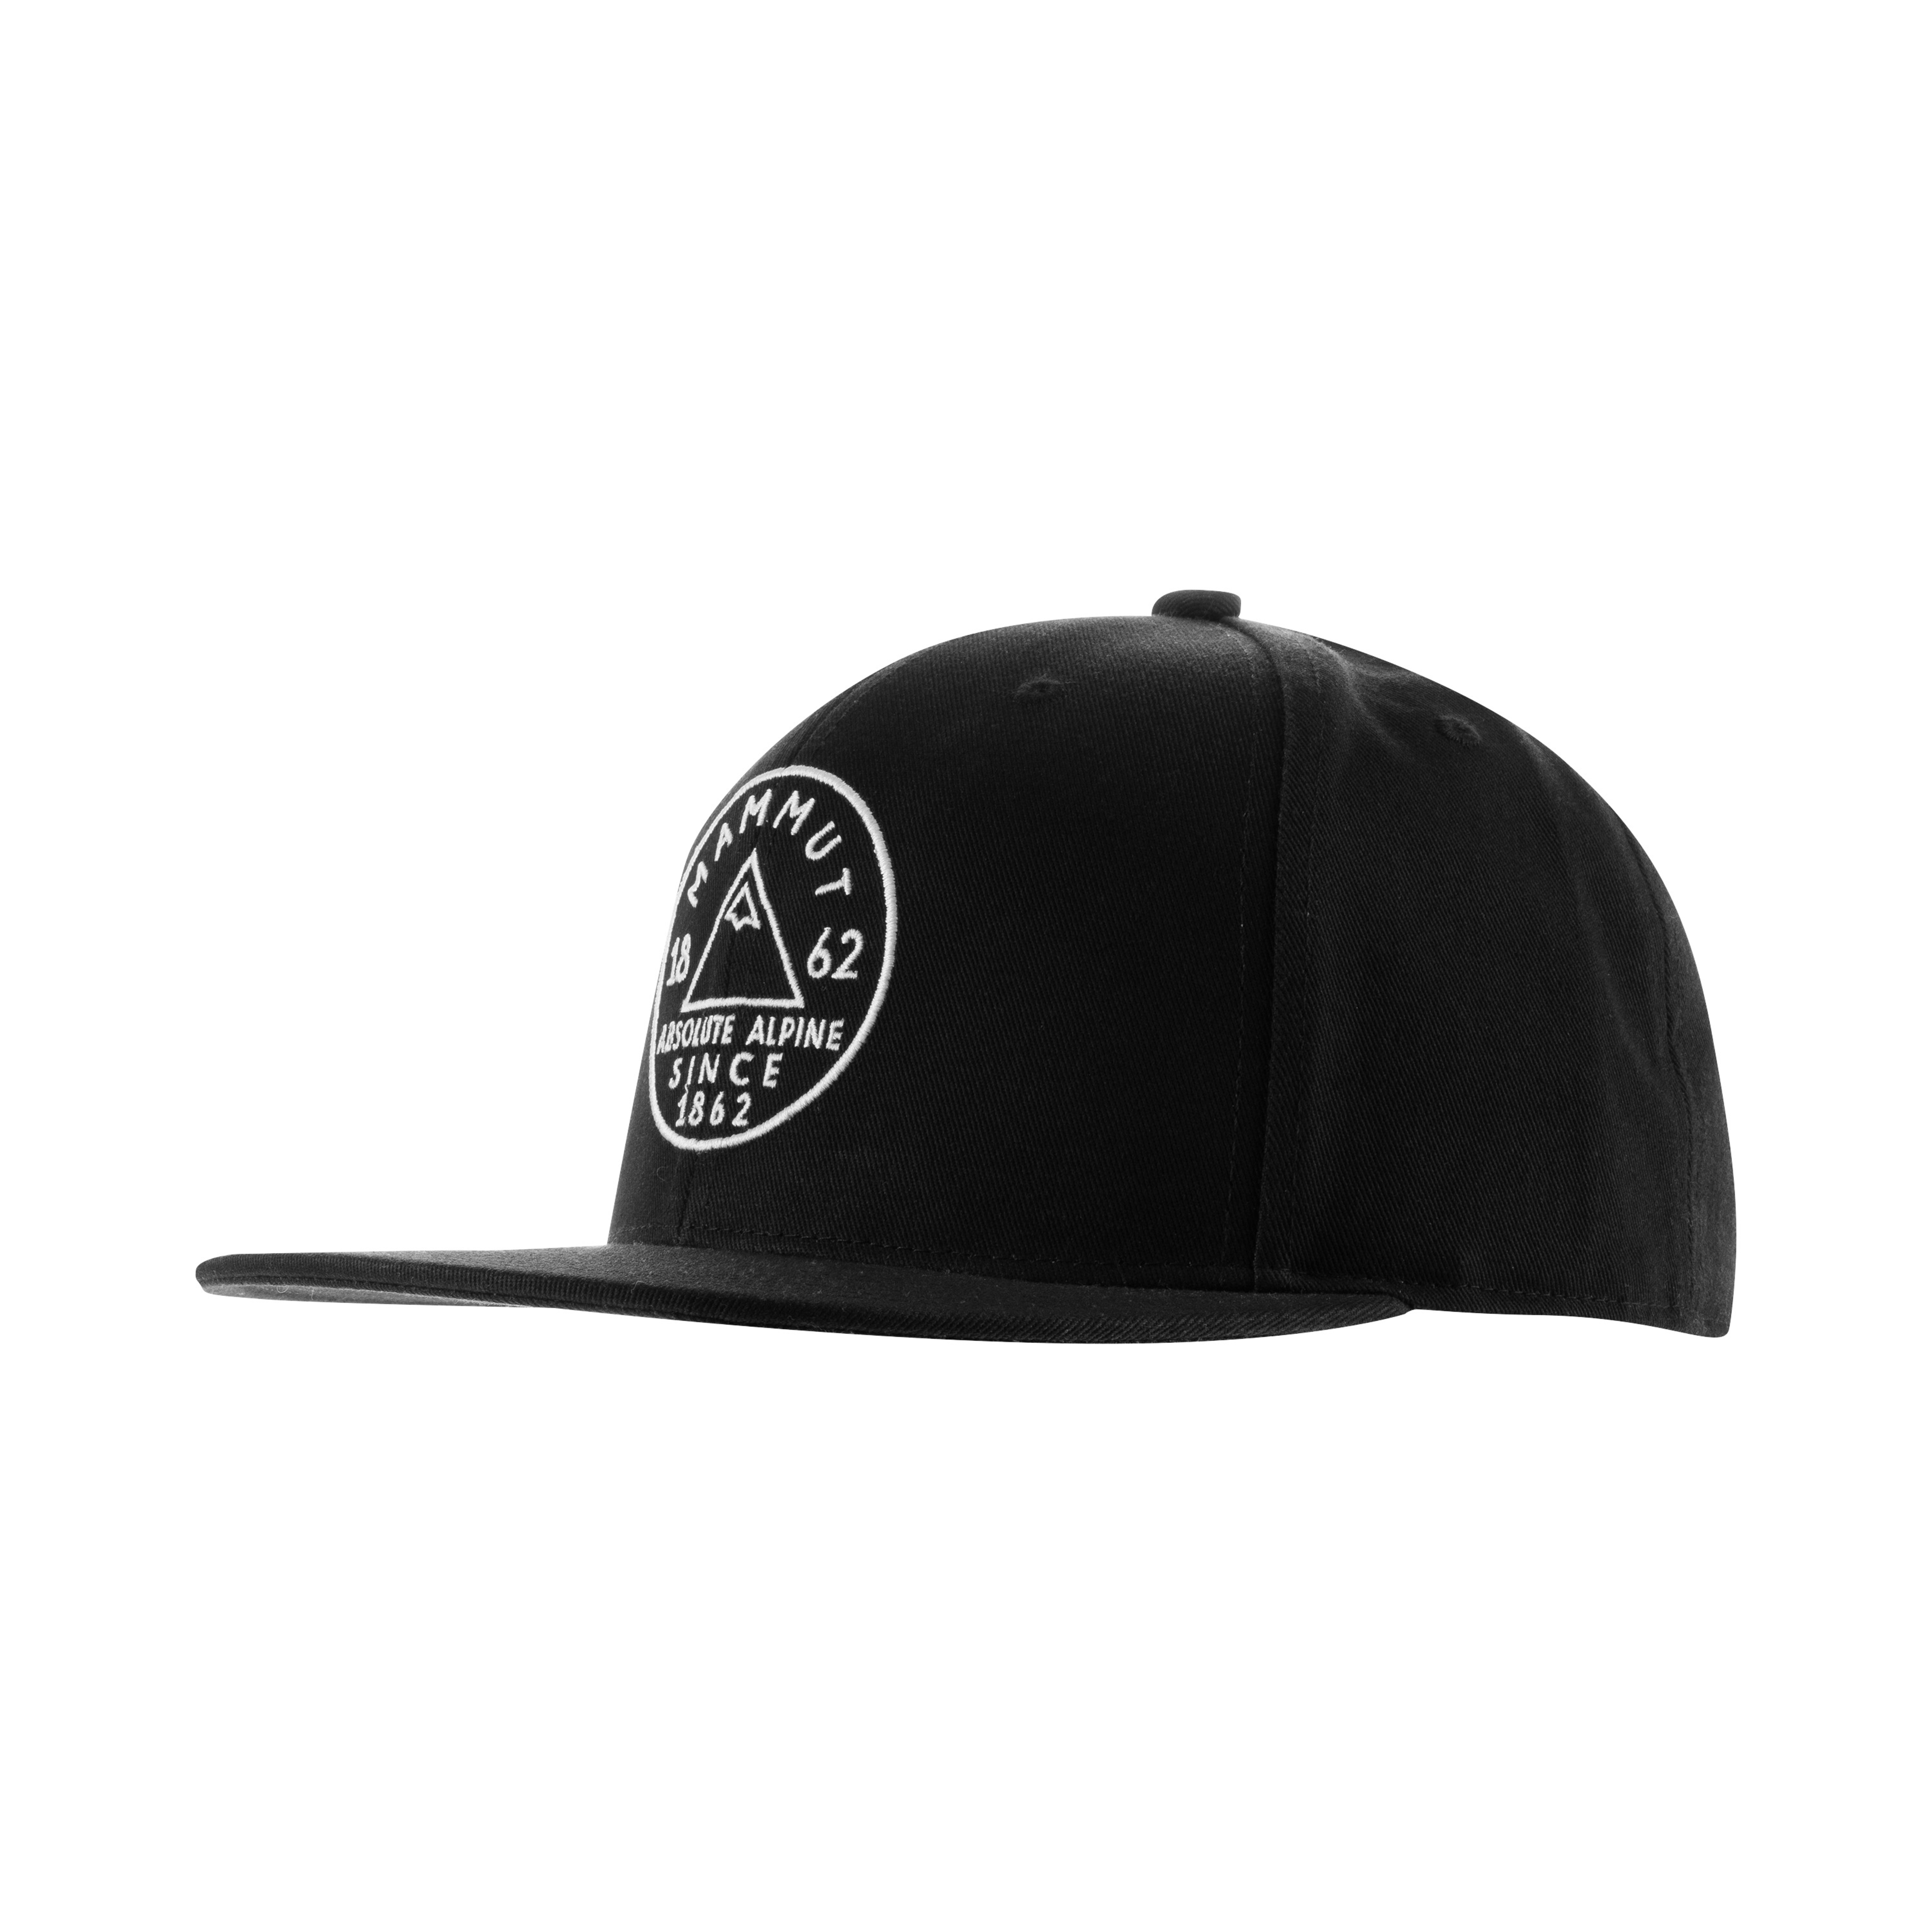 Absolute Alpine Cap - black, one size product image